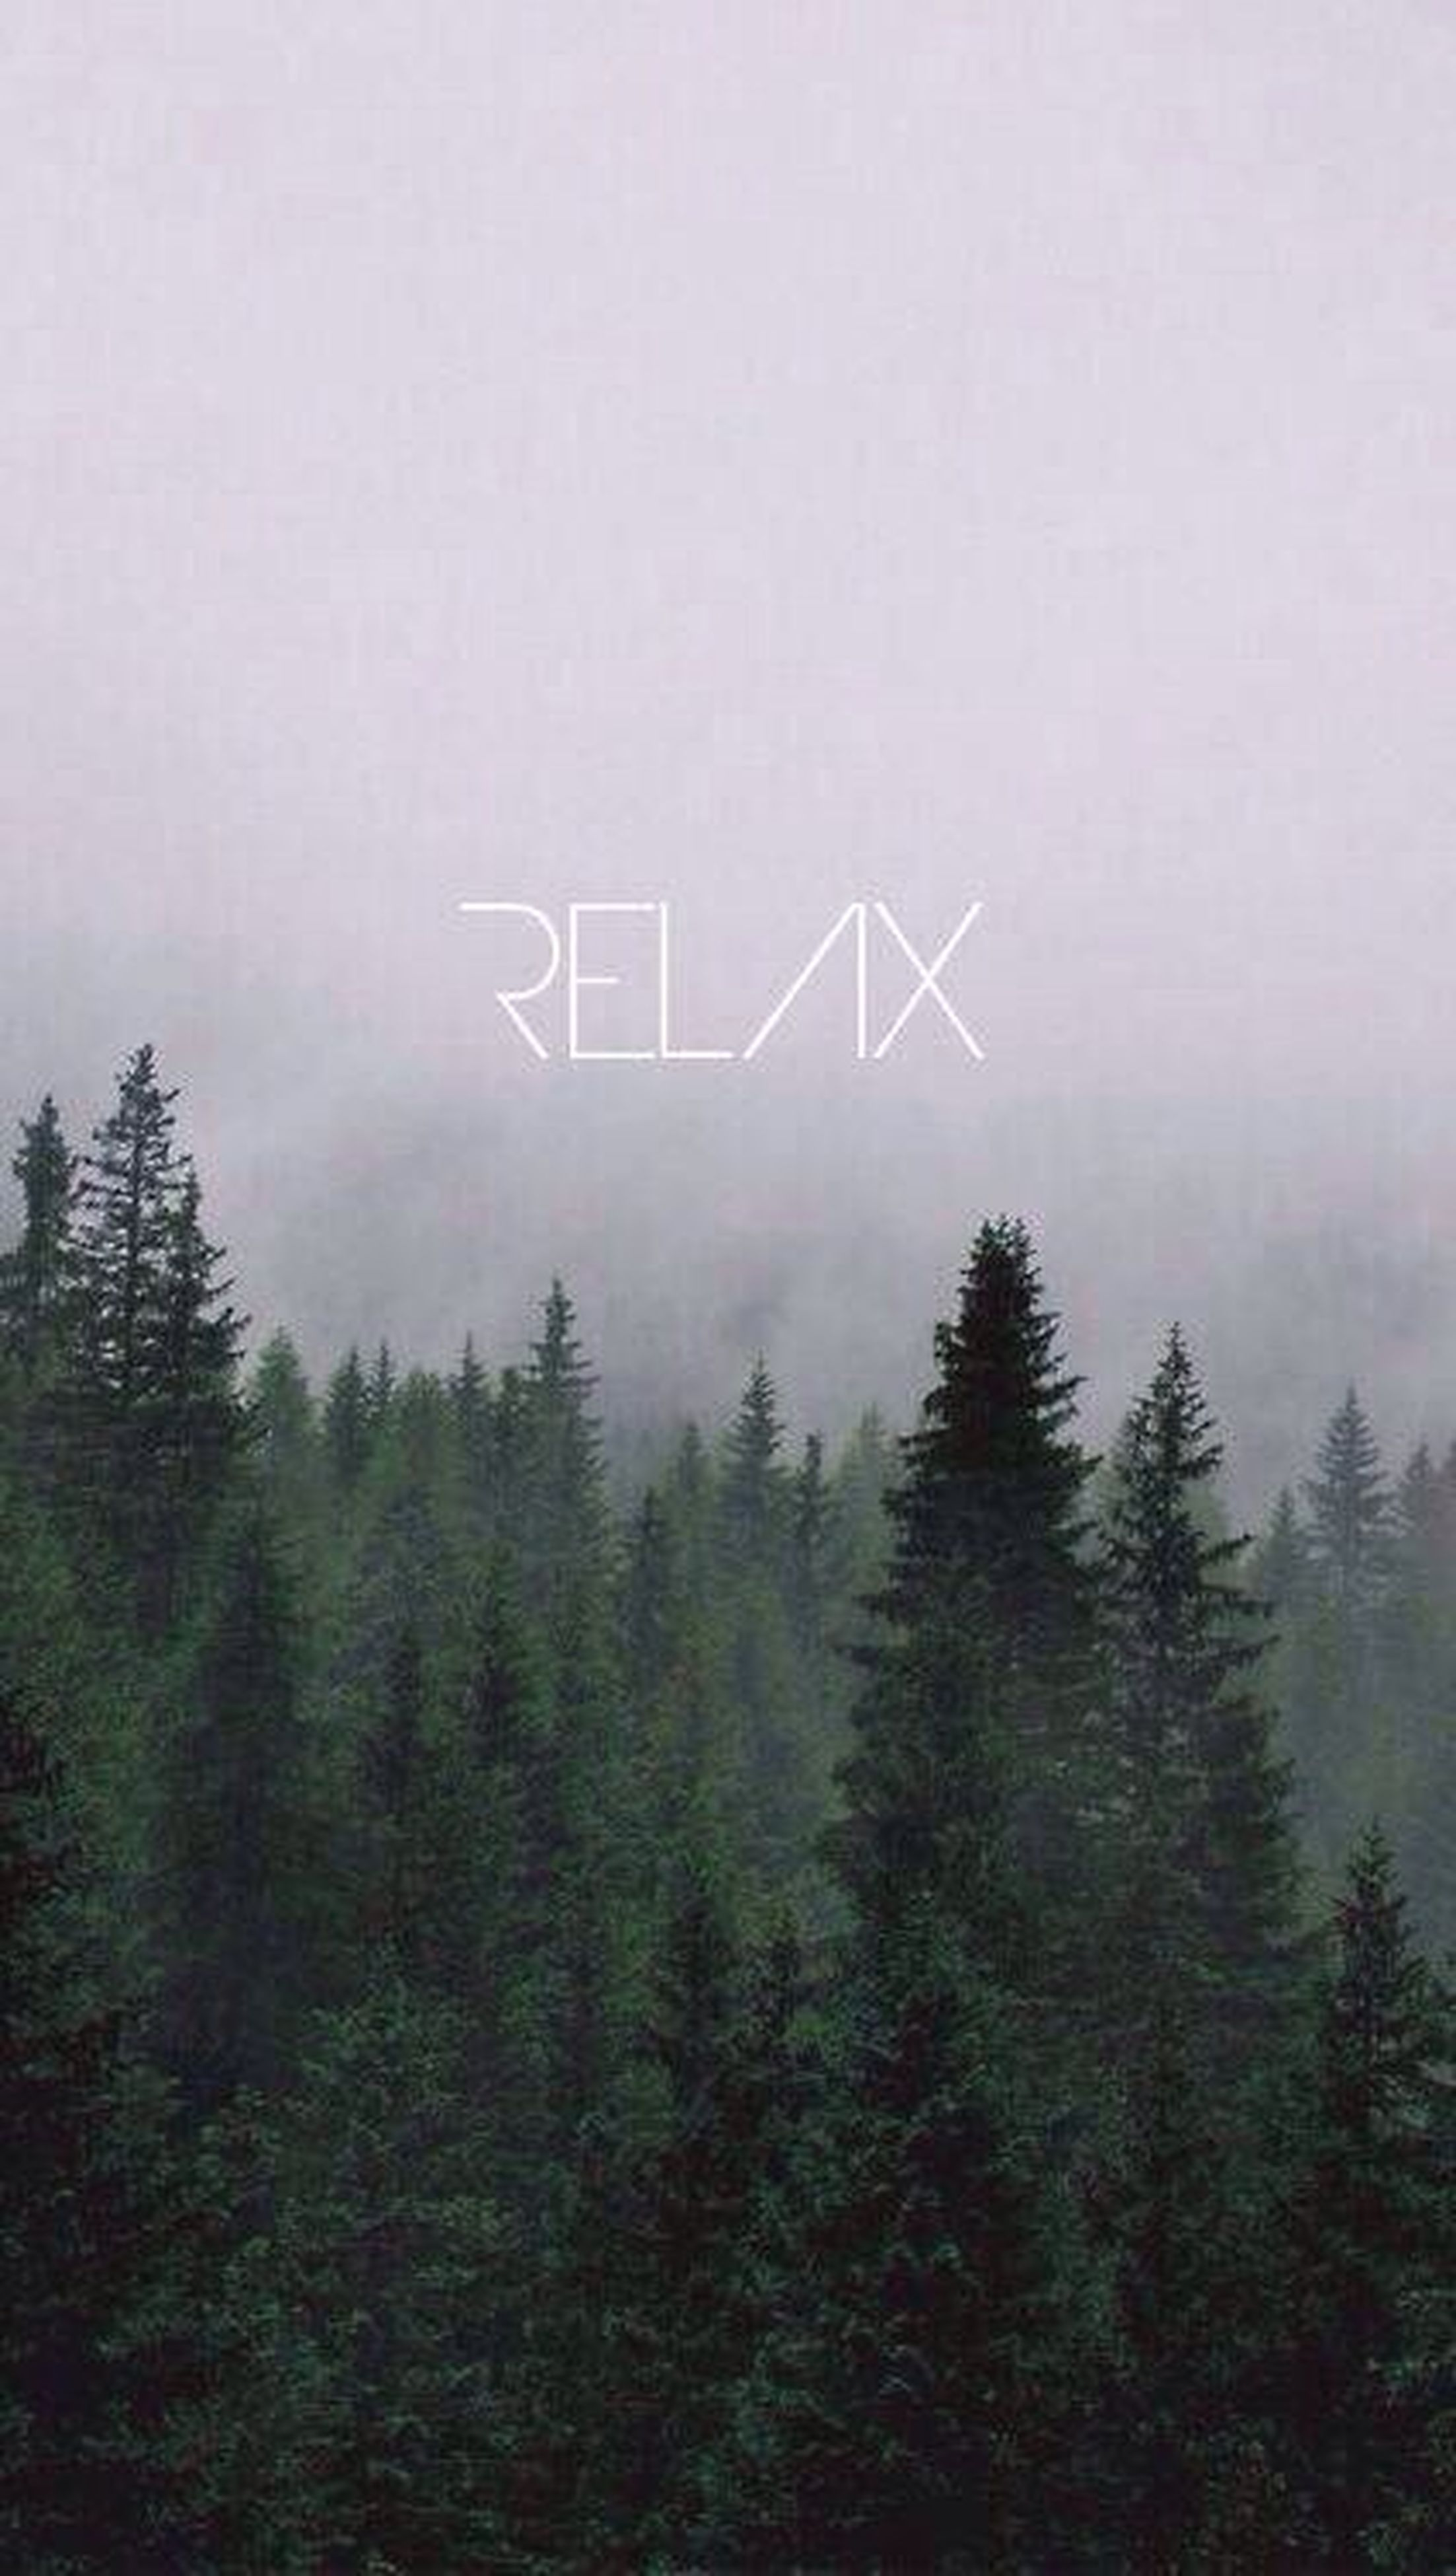 fog, tree, text, foggy, communication, western script, tranquility, growth, nature, weather, copy space, plant, tranquil scene, forest, day, information sign, beauty in nature, outdoors, no people